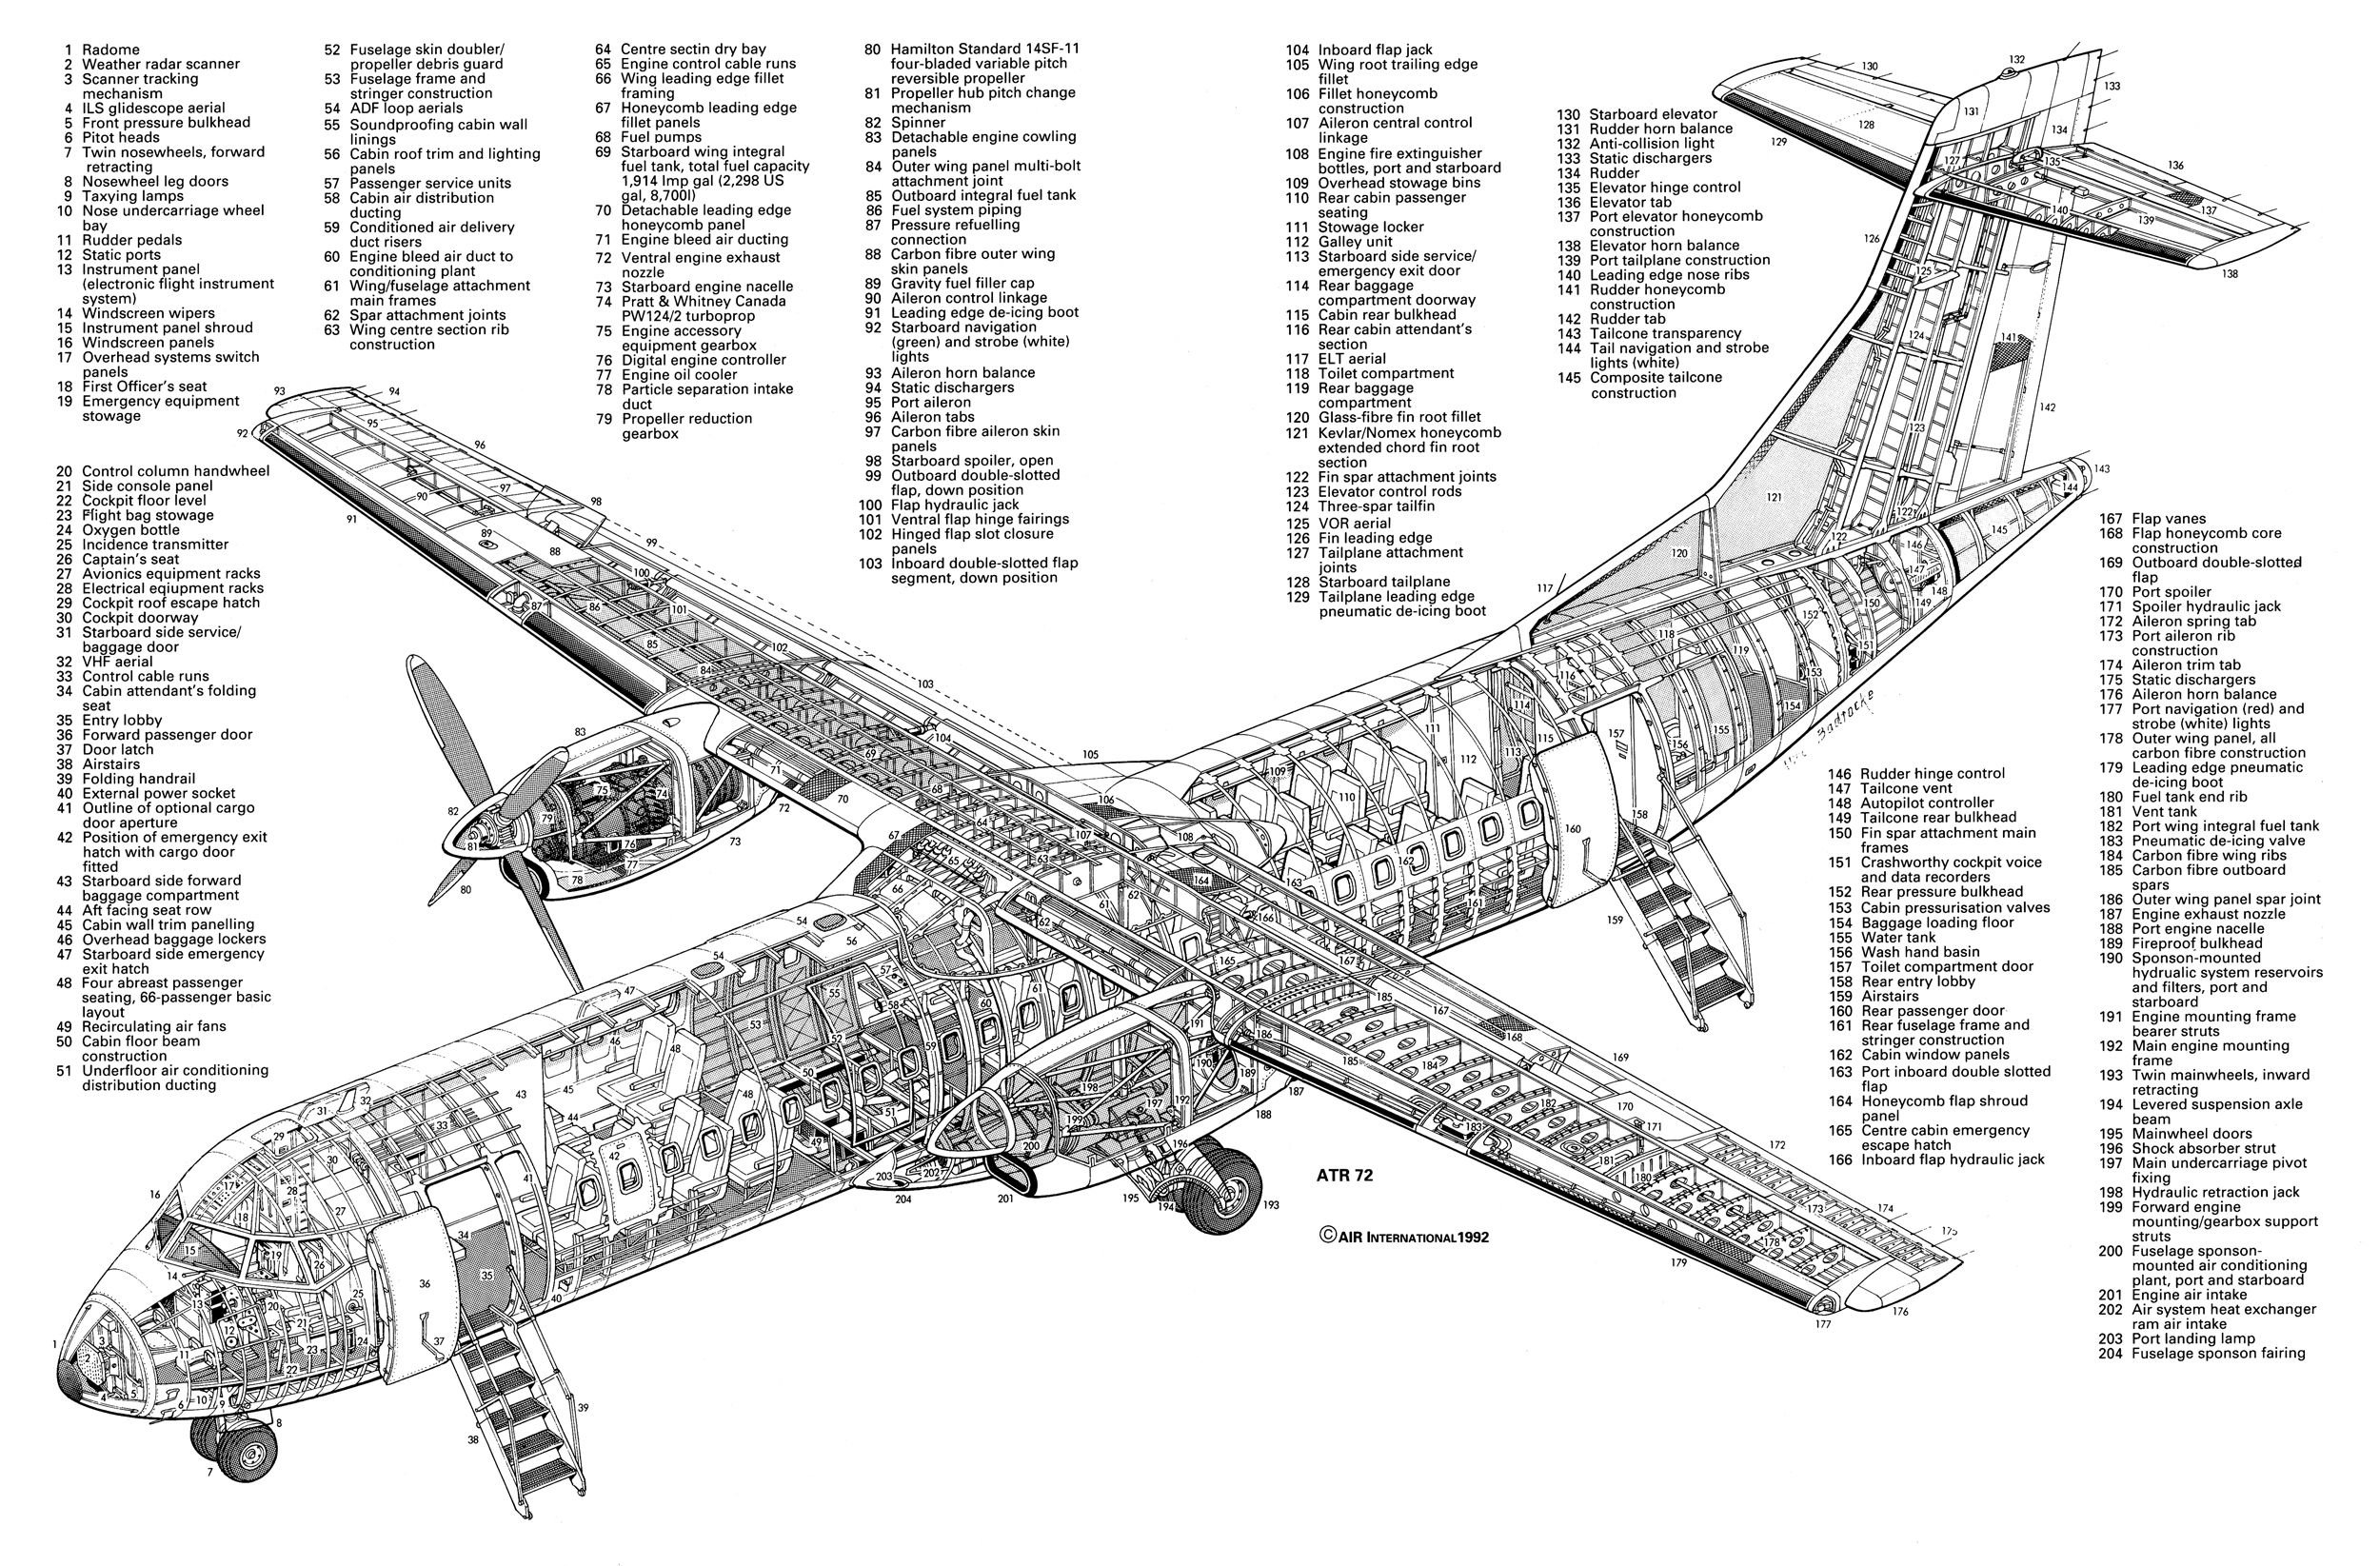 Atr 72 And Other Cutaways